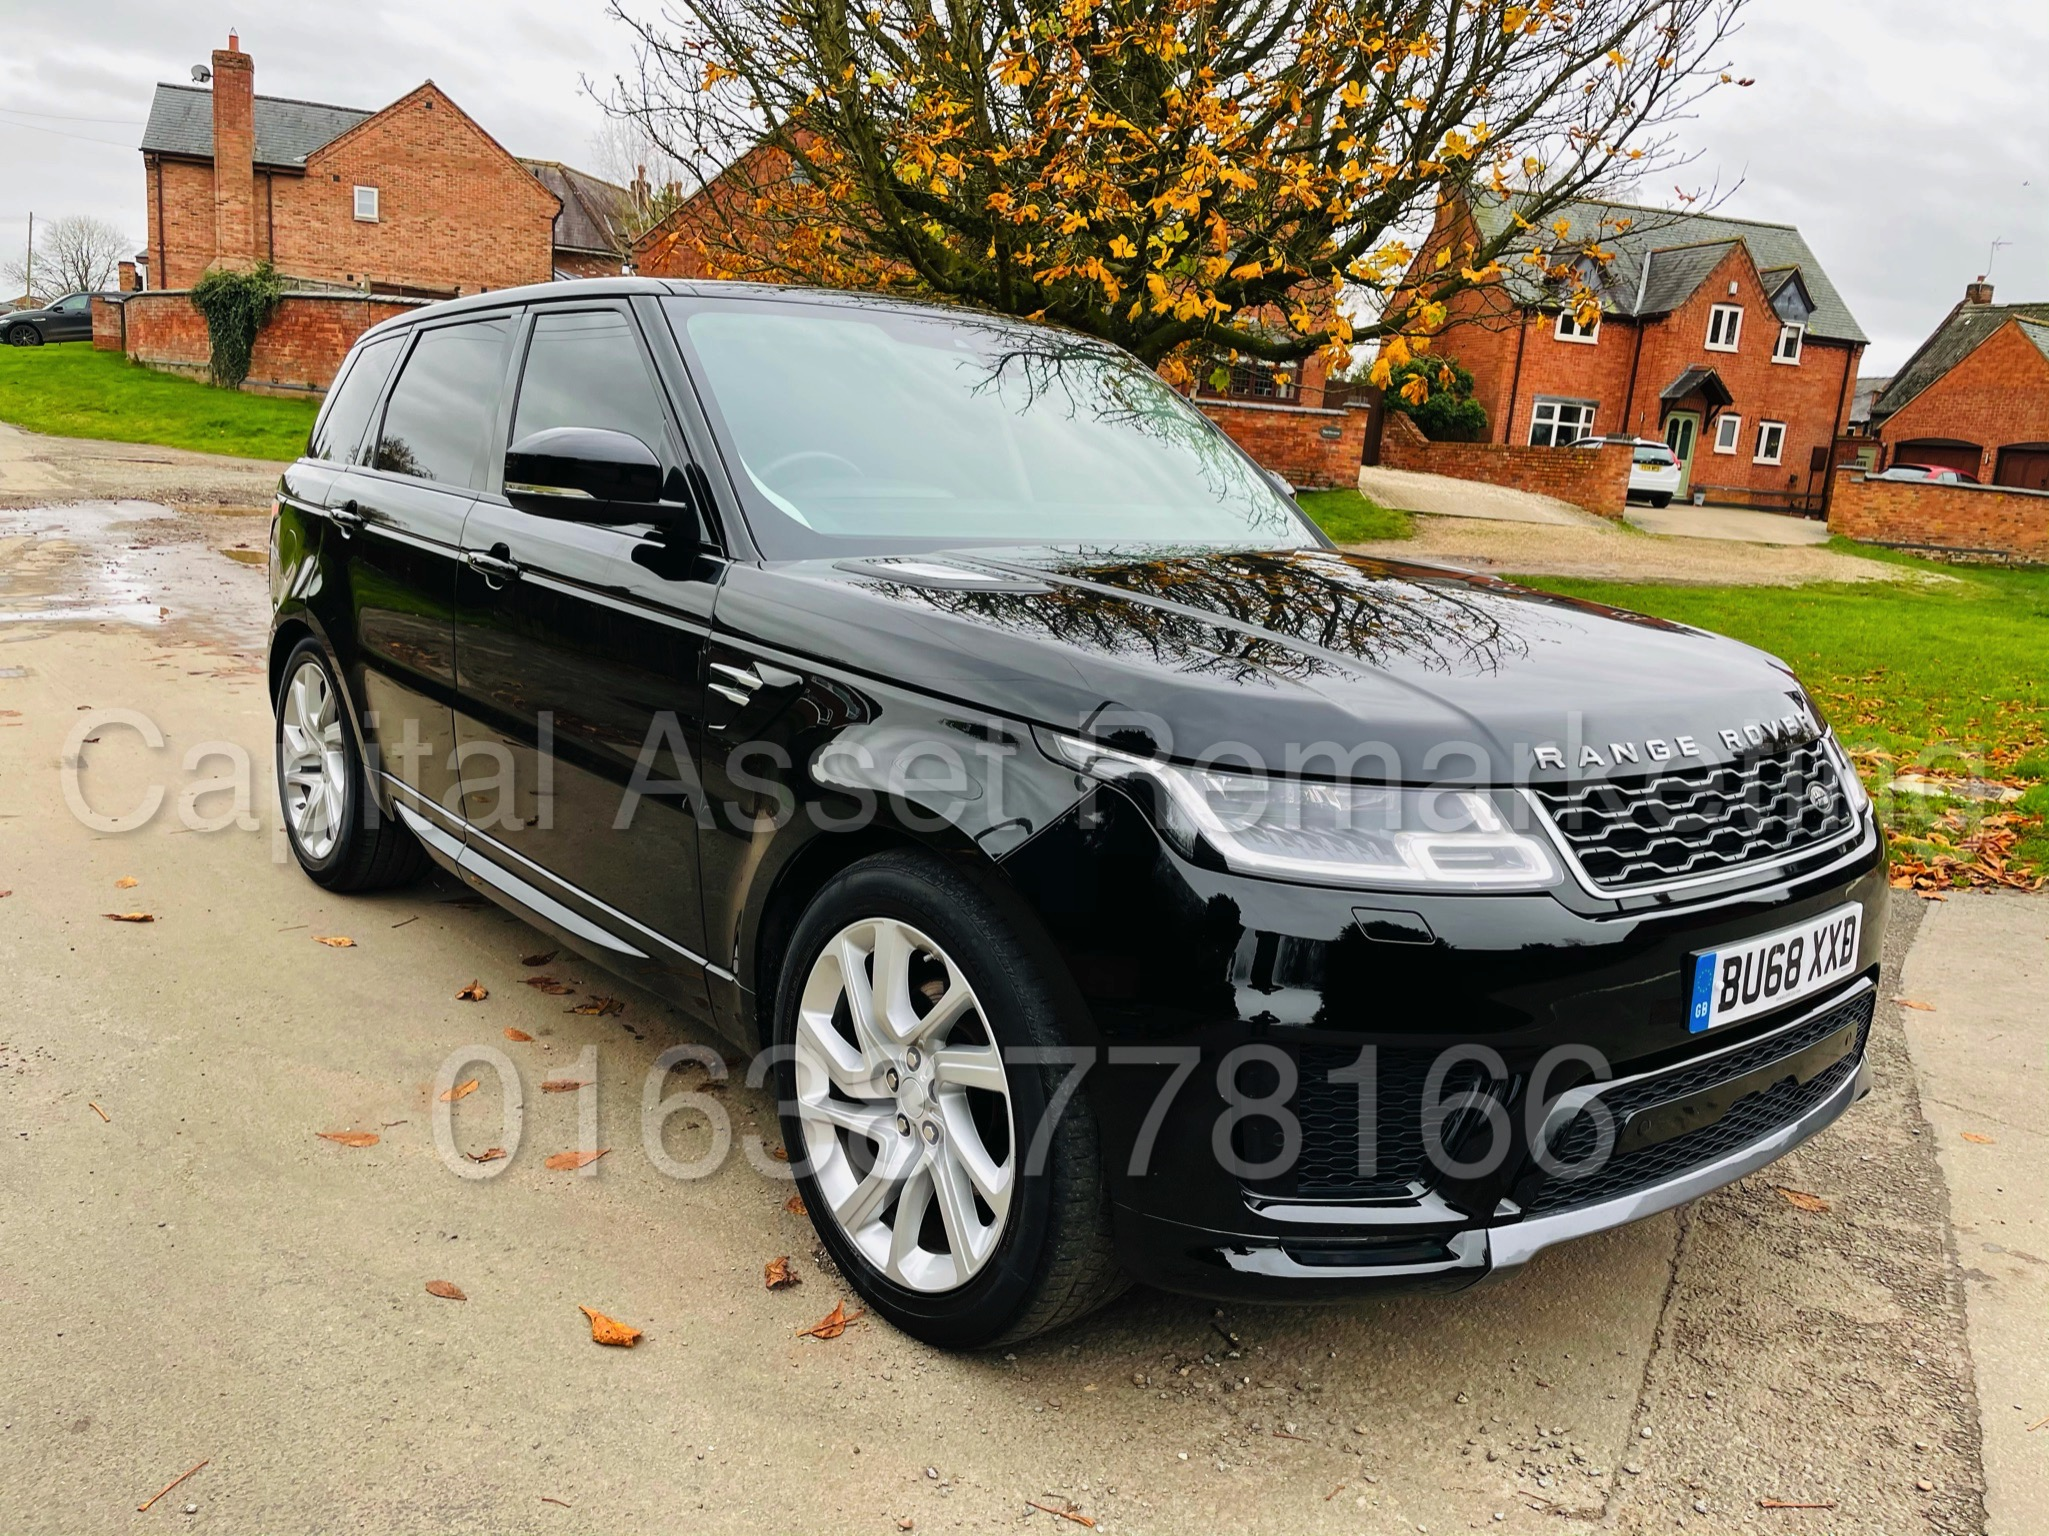 RANGE ROVER SPORT *HSE EDITION* SUV (2019 MODEL) '3.0 SDV6 - 306 BHP - 8 SPEED AUTO' *FULLY LOADED* - Image 3 of 56